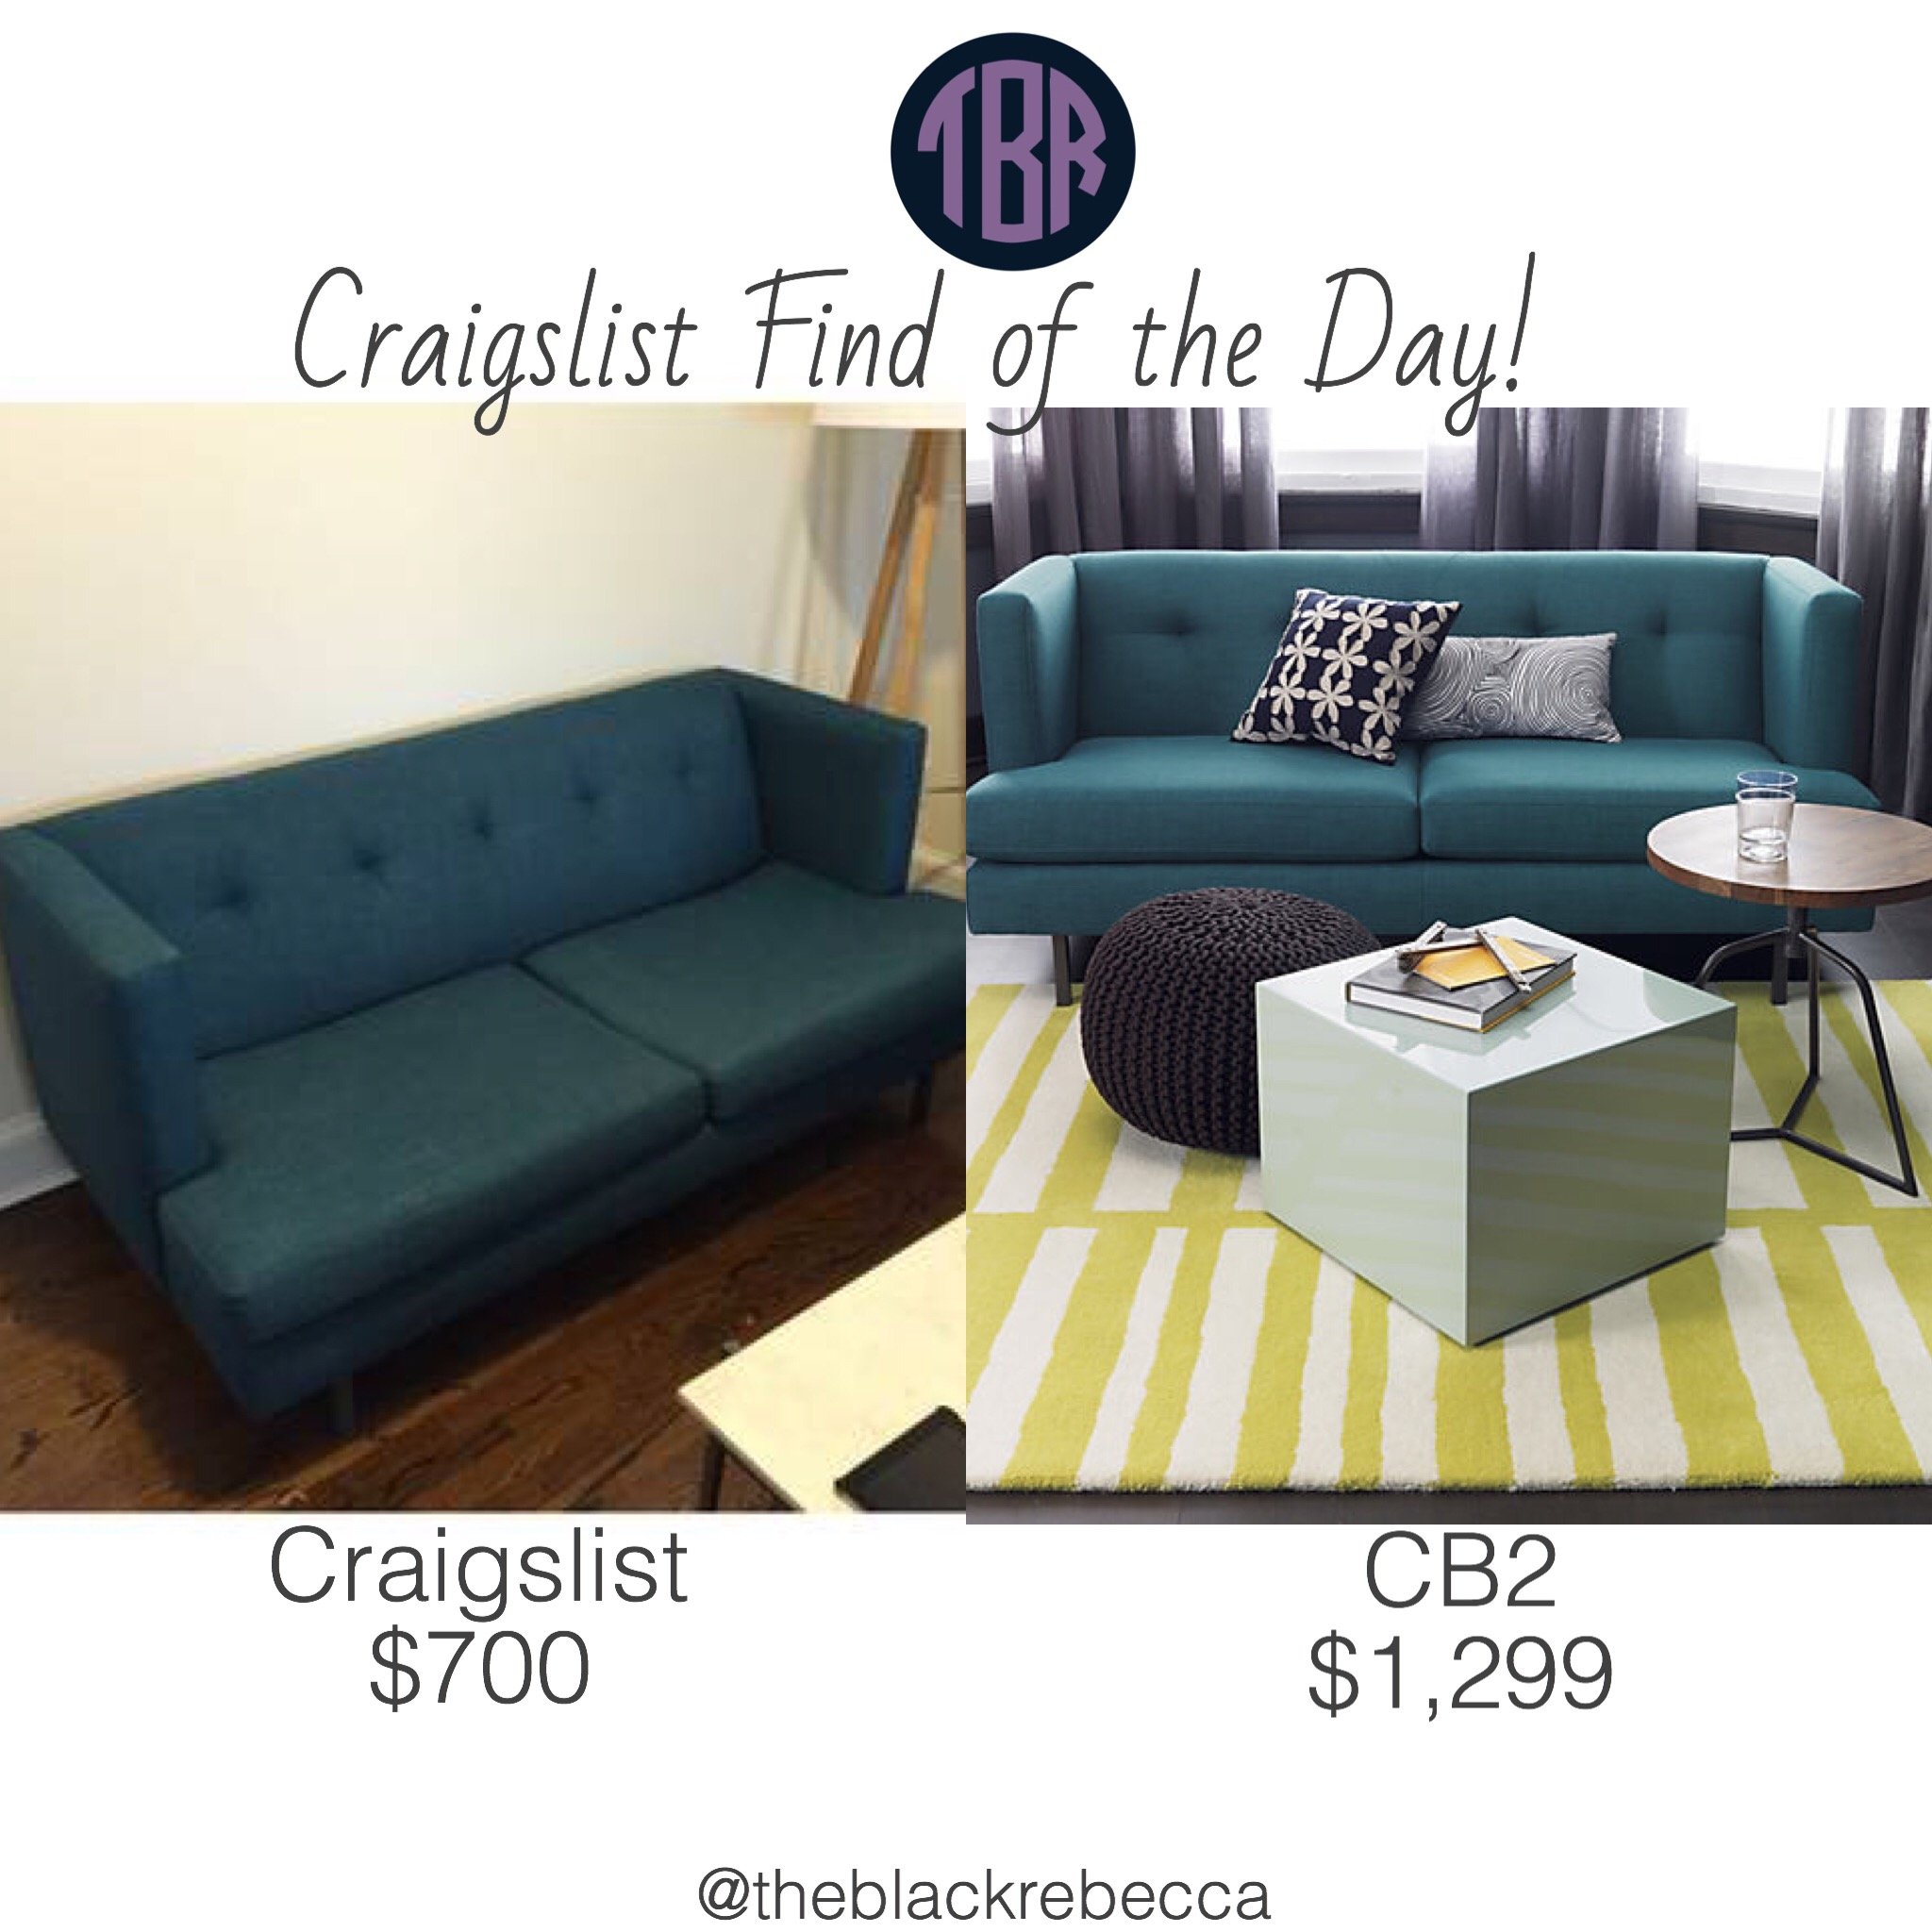 cb2 club leather sofa cheap sofas online free shipping craigslist find of the day avec apartment